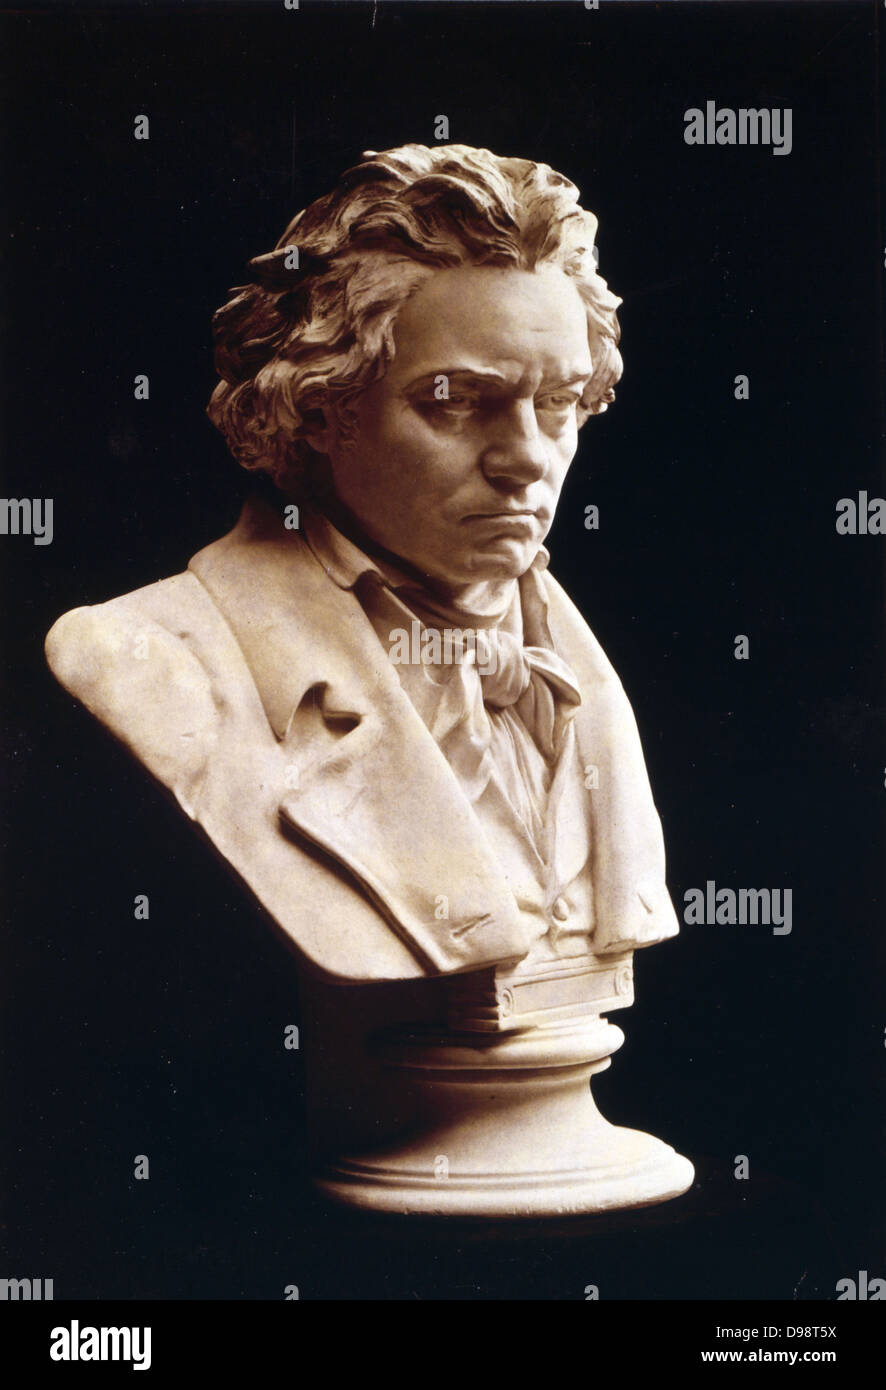 Portrait bust of Ludwig van Beethoven (1770-1827), German composer and pianist. One of the most influential western - Stock Image